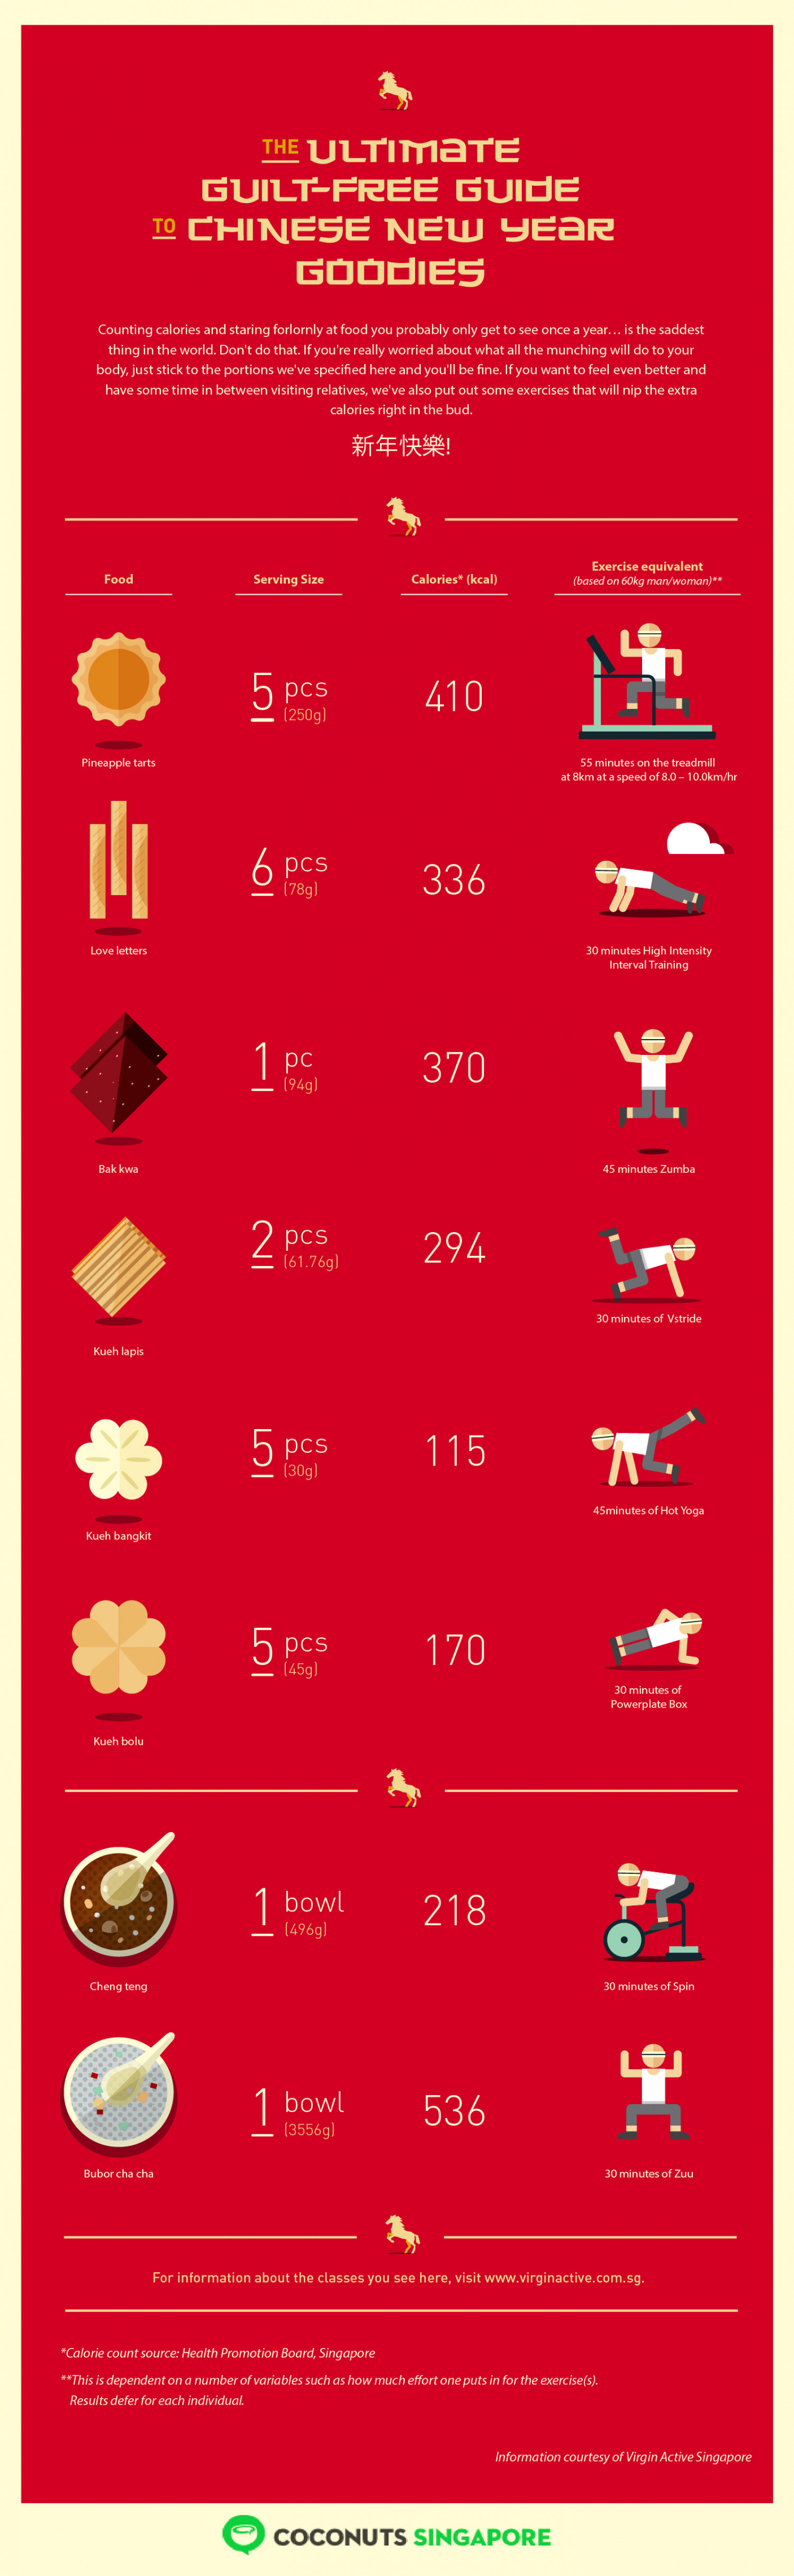 The guilt-free guide to Chinese New Year goodies Infographic